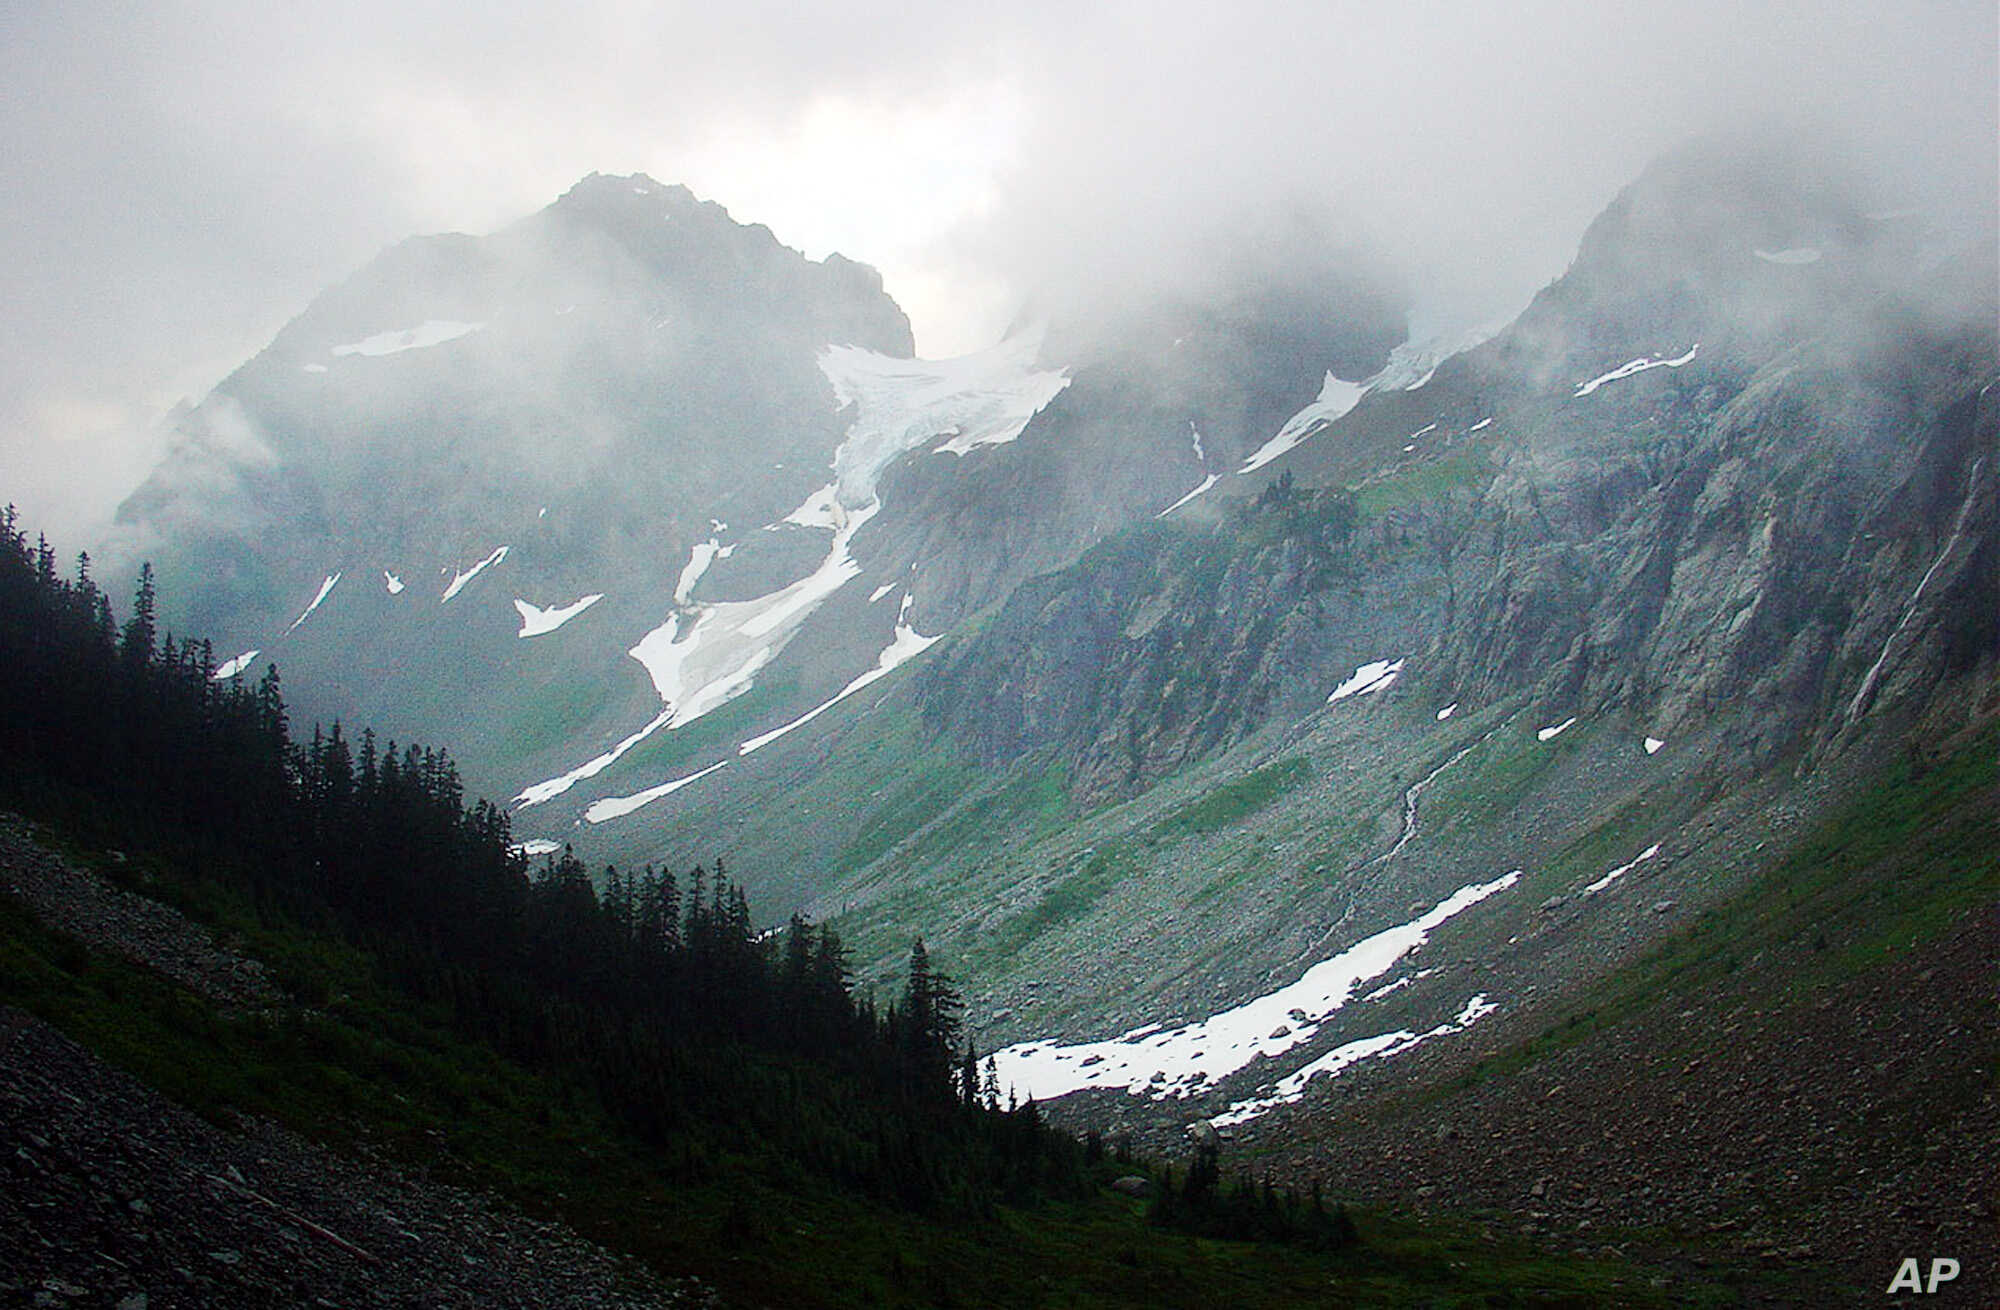 FILE - An overview of the Cascade Range inside the North Cascades National Park near Marblemount, Wash., near the Canadian border. A quarter of the planet's land surface remains wilderness, conservationist James Watson says.